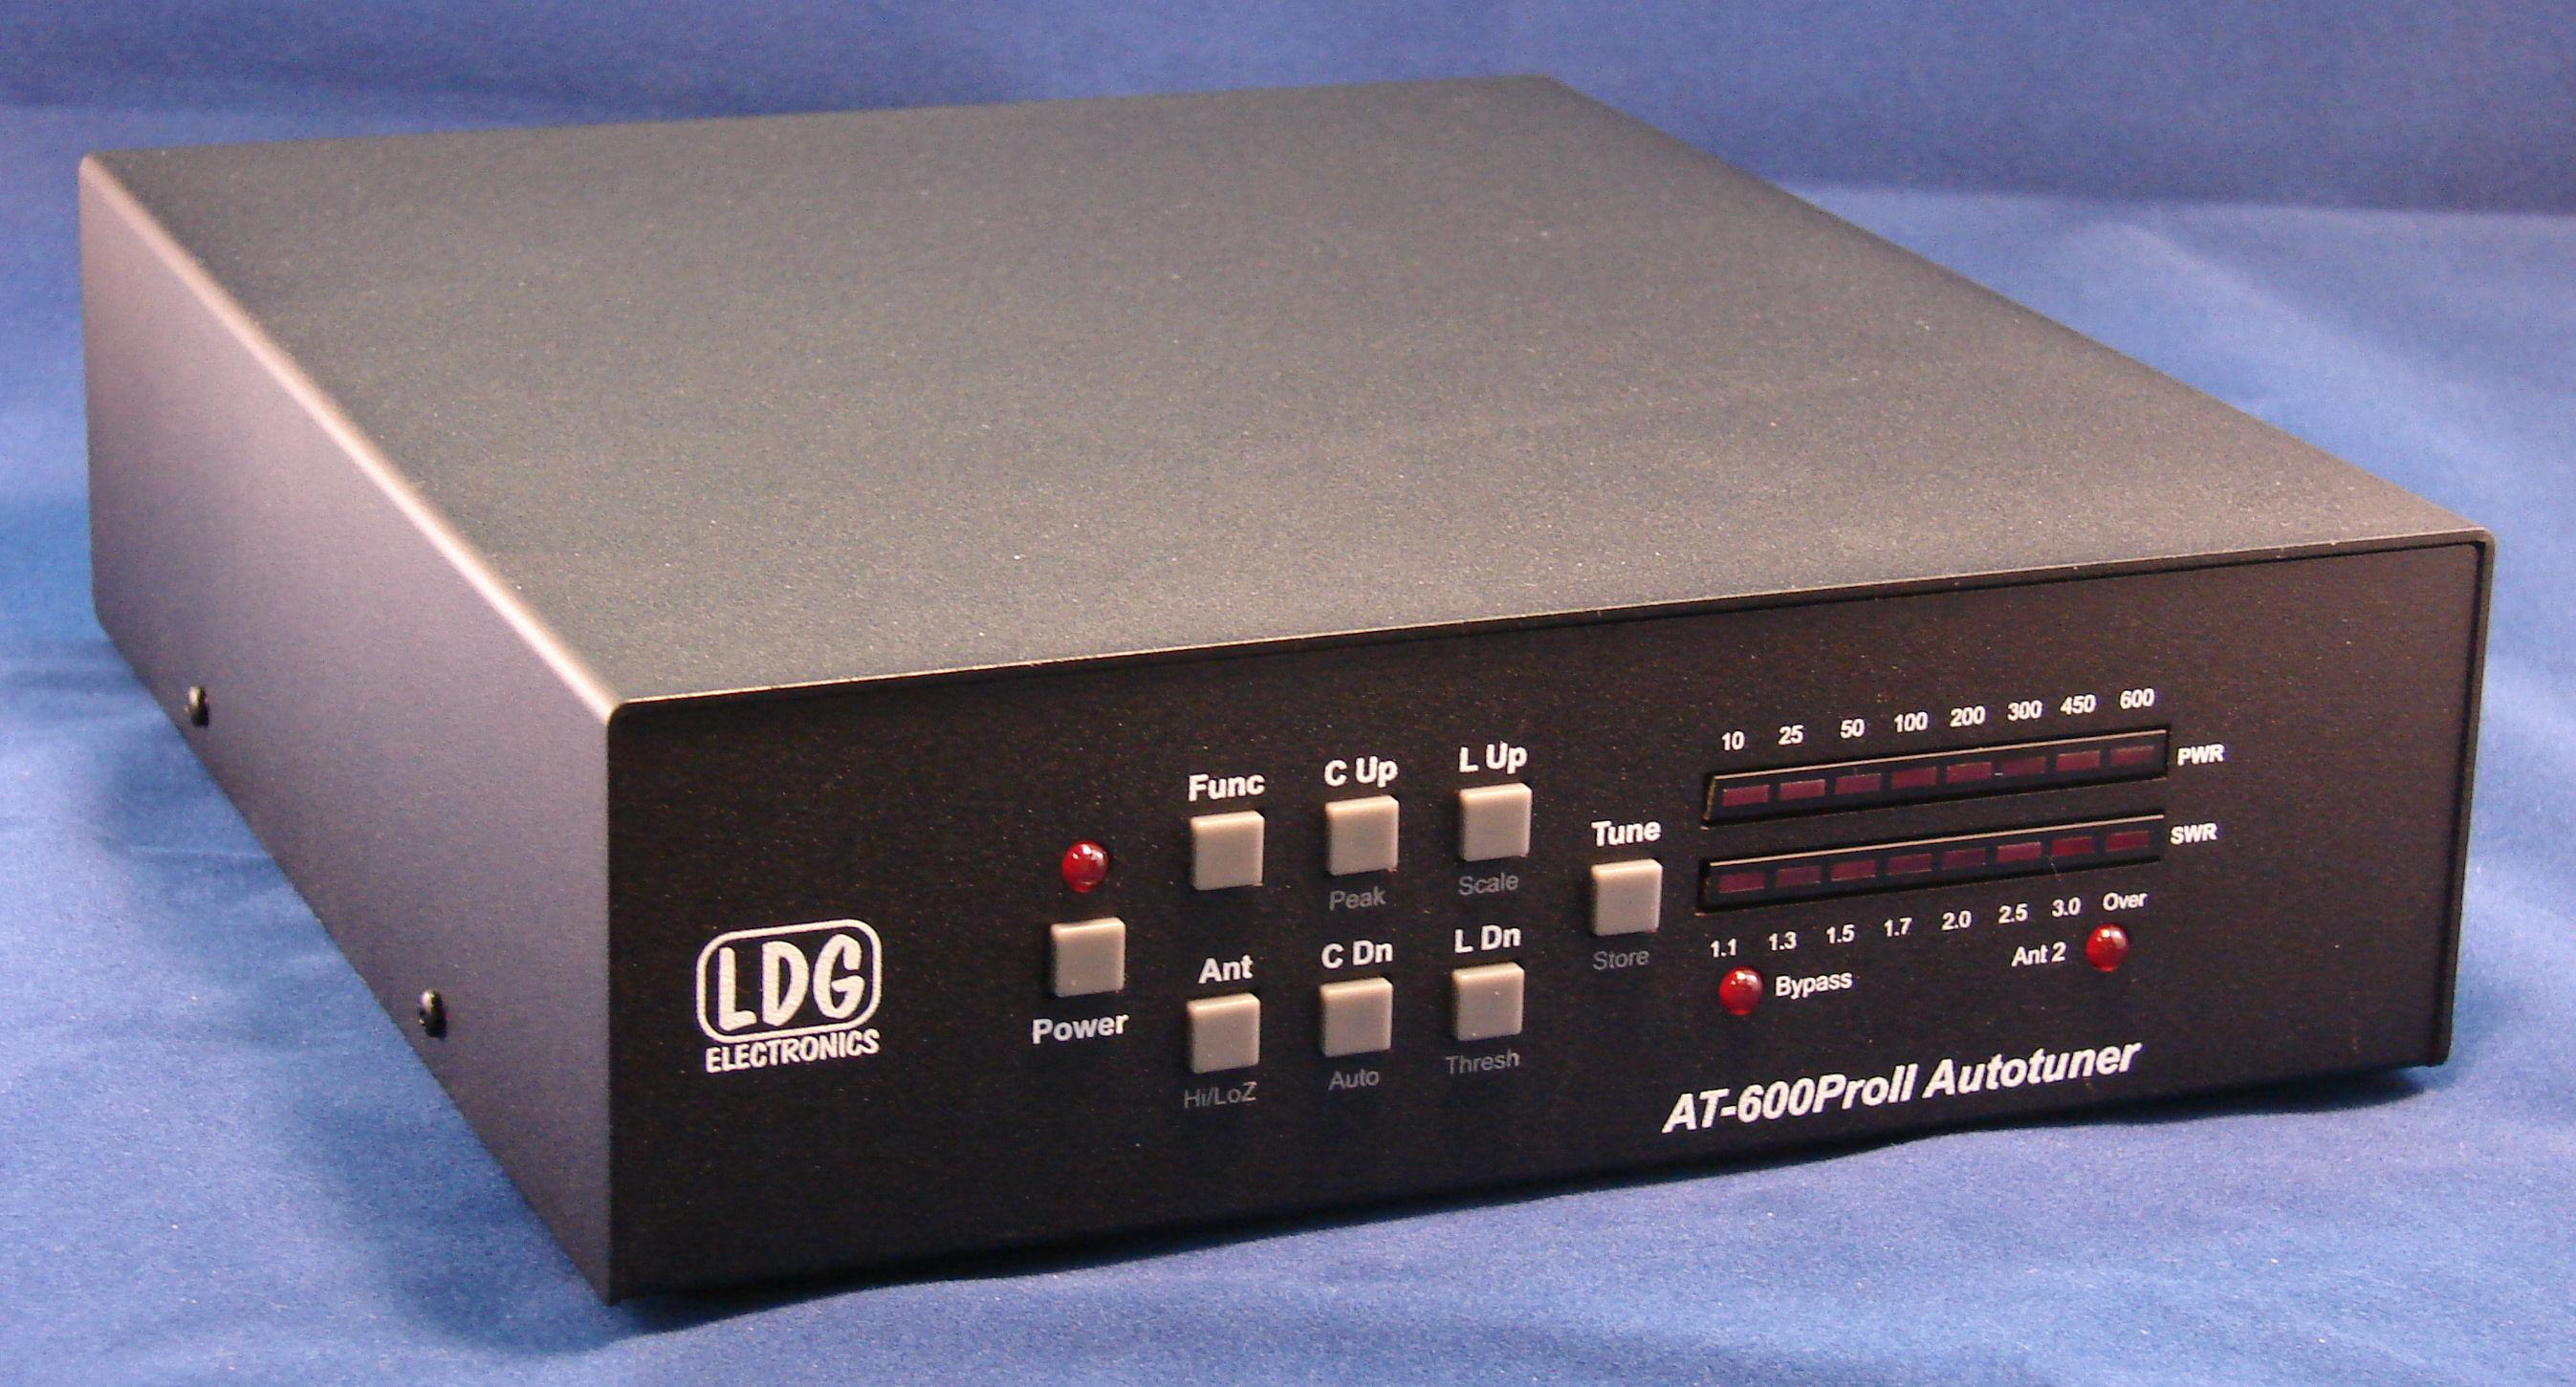 LDG AT-600ProII Automatic Antenna Tuner